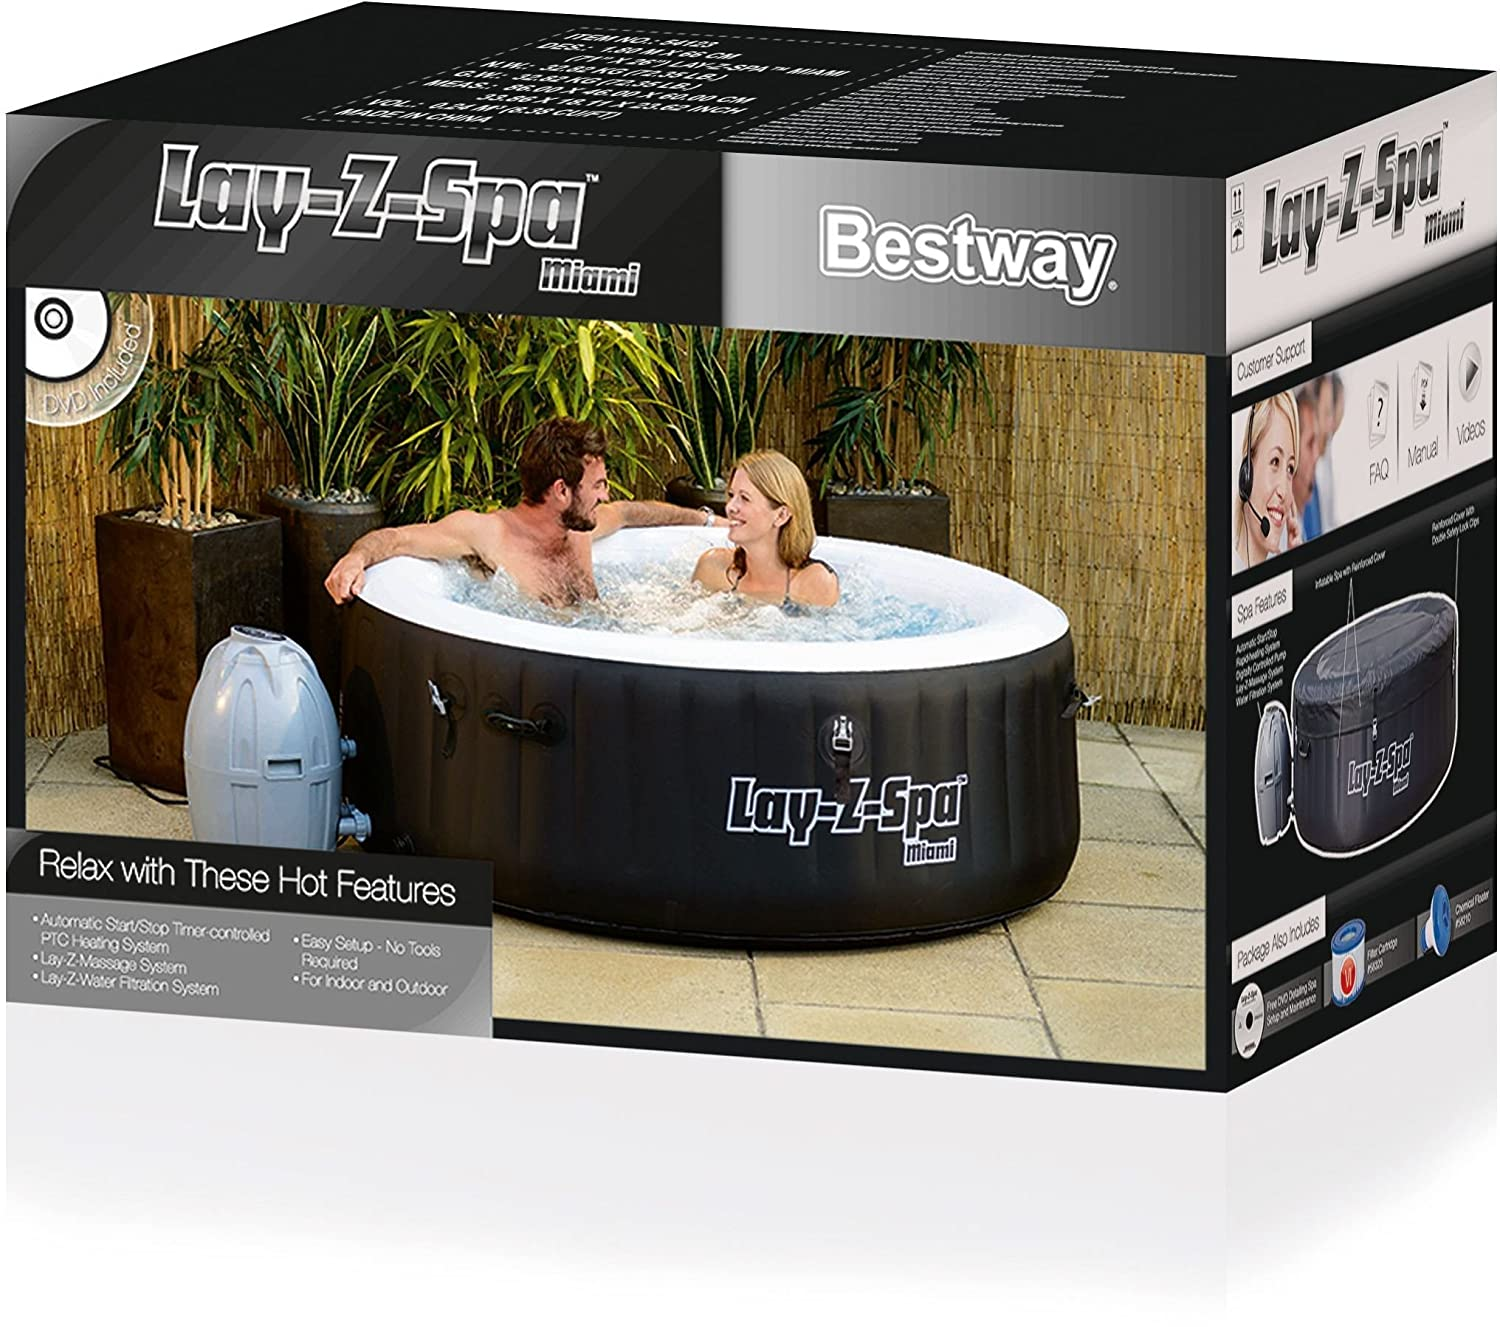 bestway lay z spa miami whirlpool im test aufblasbare whirlpools. Black Bedroom Furniture Sets. Home Design Ideas